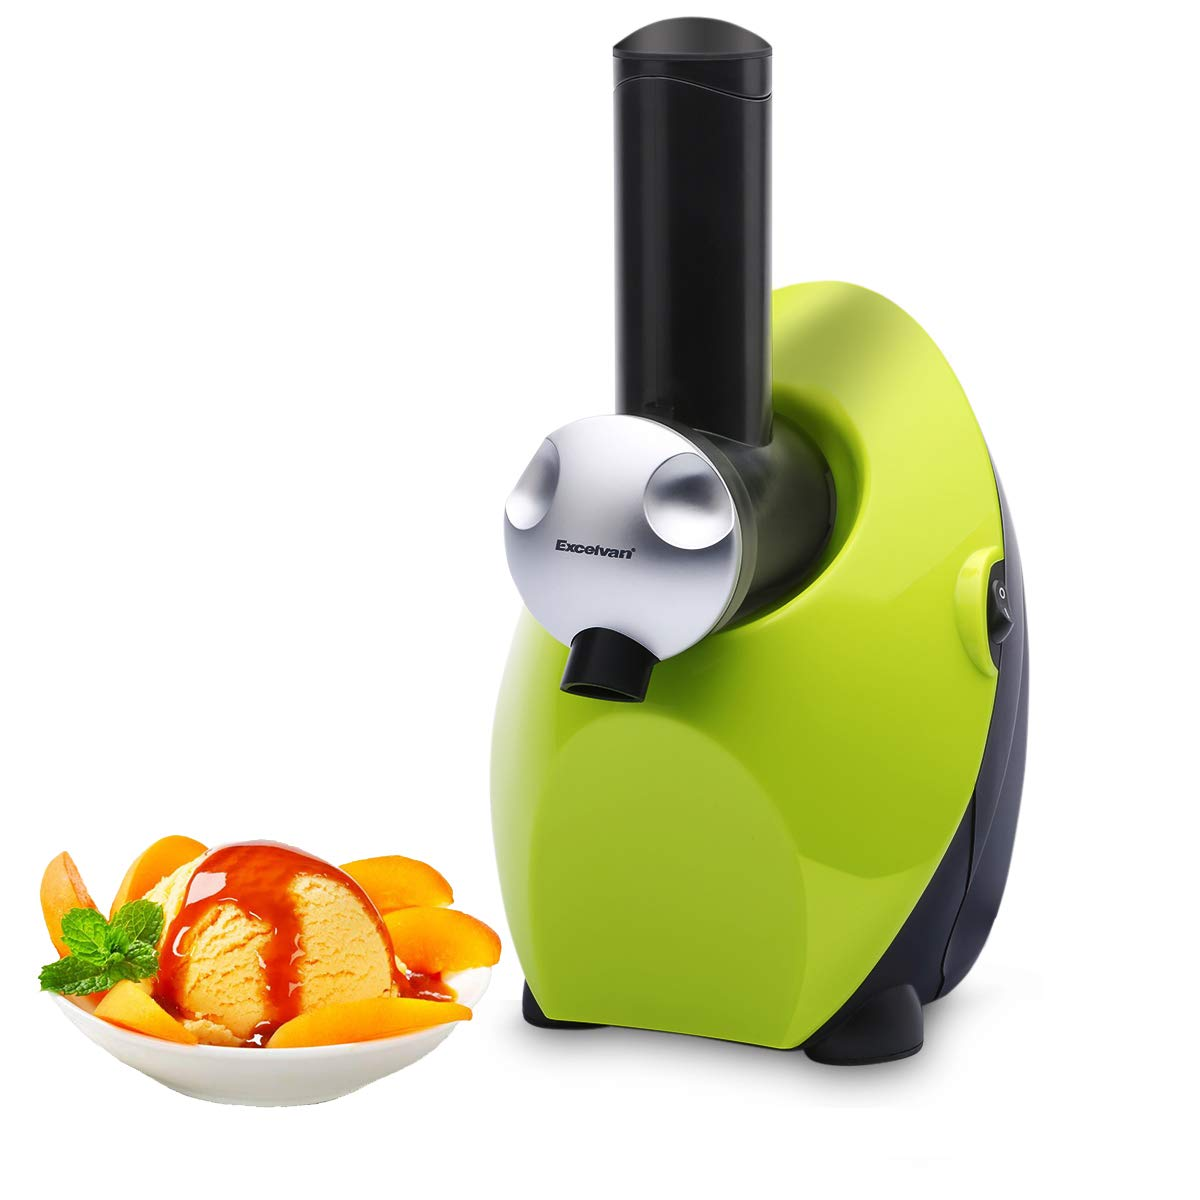 Homemade Frozen Fruit Yogurt Dessert Maker, Automatic Healthy Ice Cream Maker Electric Machine, Sweet Treat Smoothie Sorbet Maker Blender by Excelvan (Green)